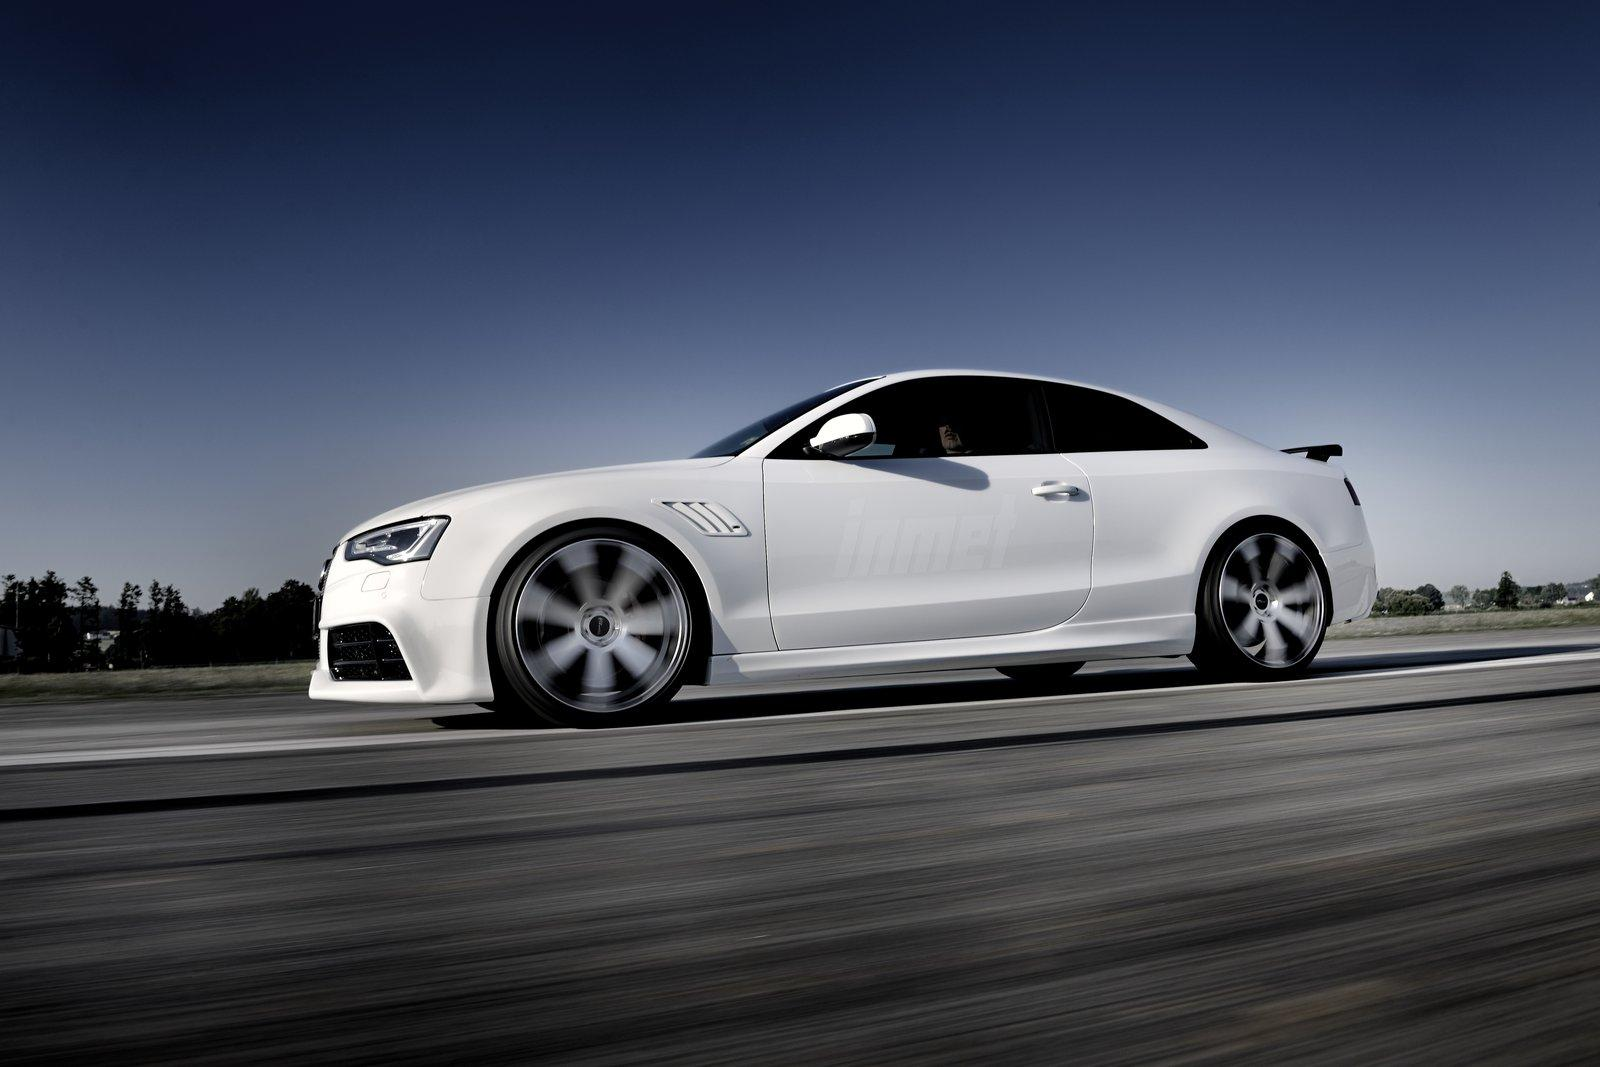 2012-Audi-A5-Facelift-Rieger-Tuning-4.jpg?imgmax=1800